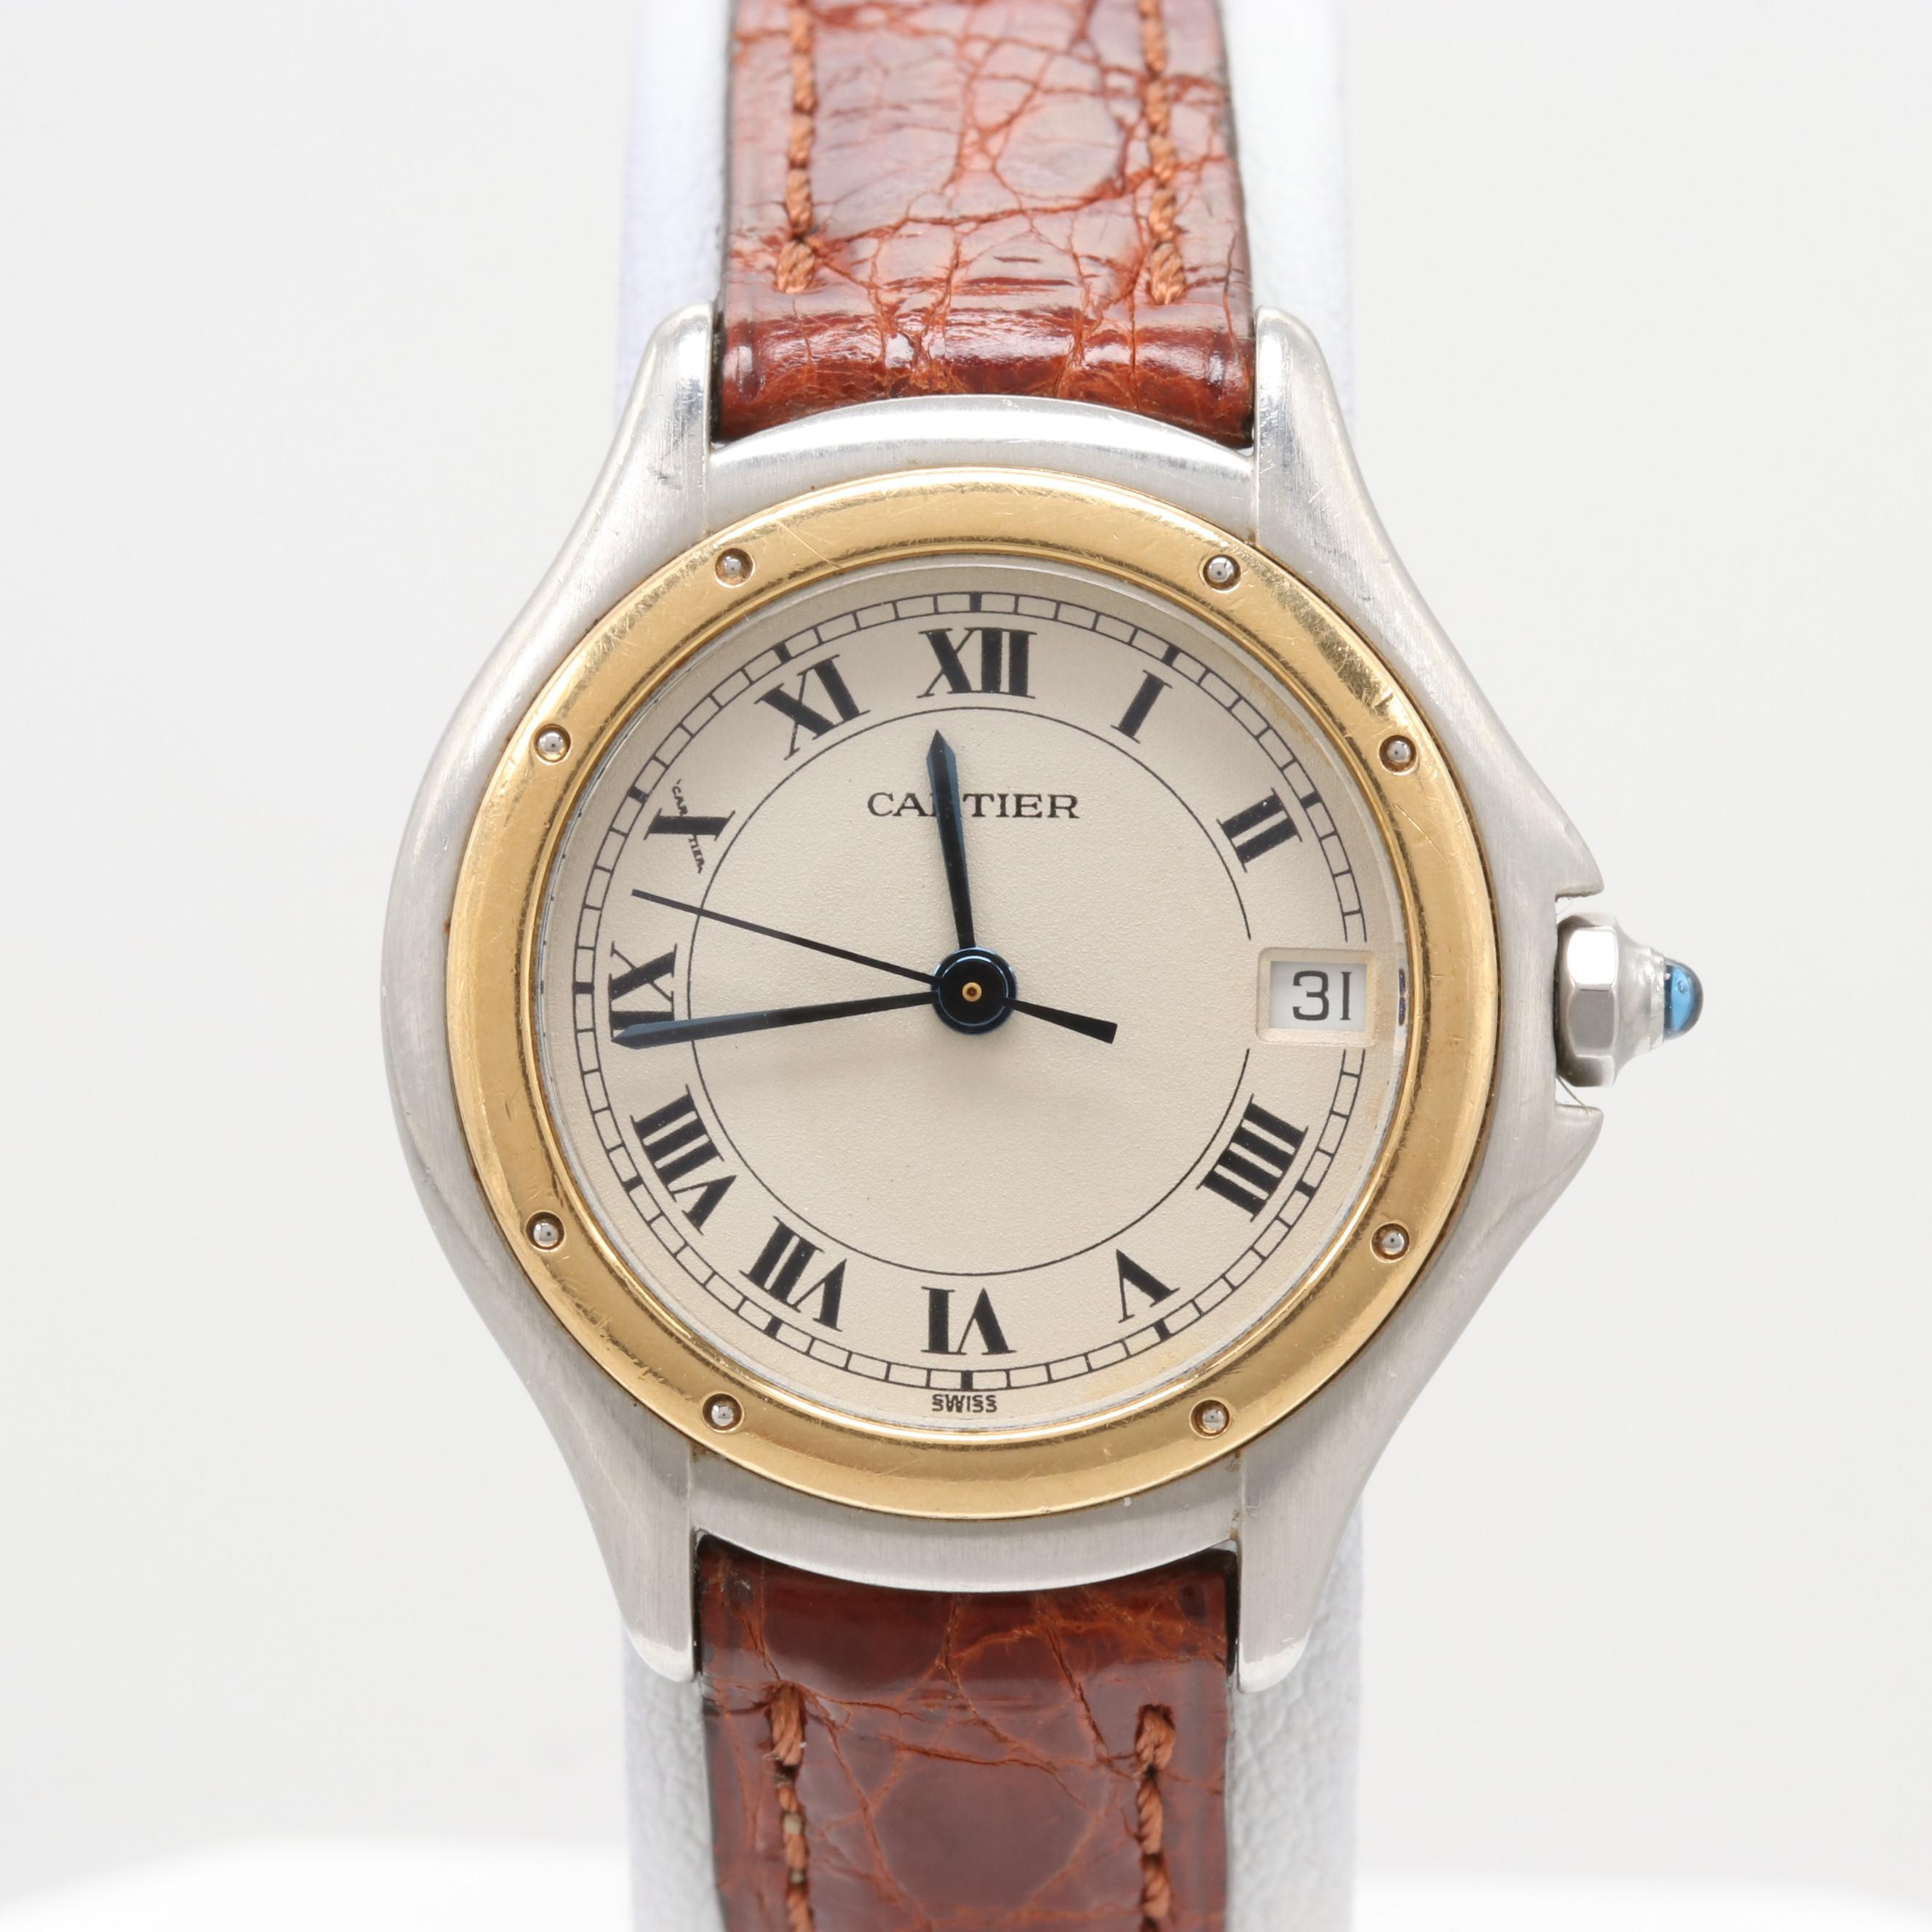 Cartier Cougar Stainless Steel and 18K Yellow Gold Quartz Wristwatch